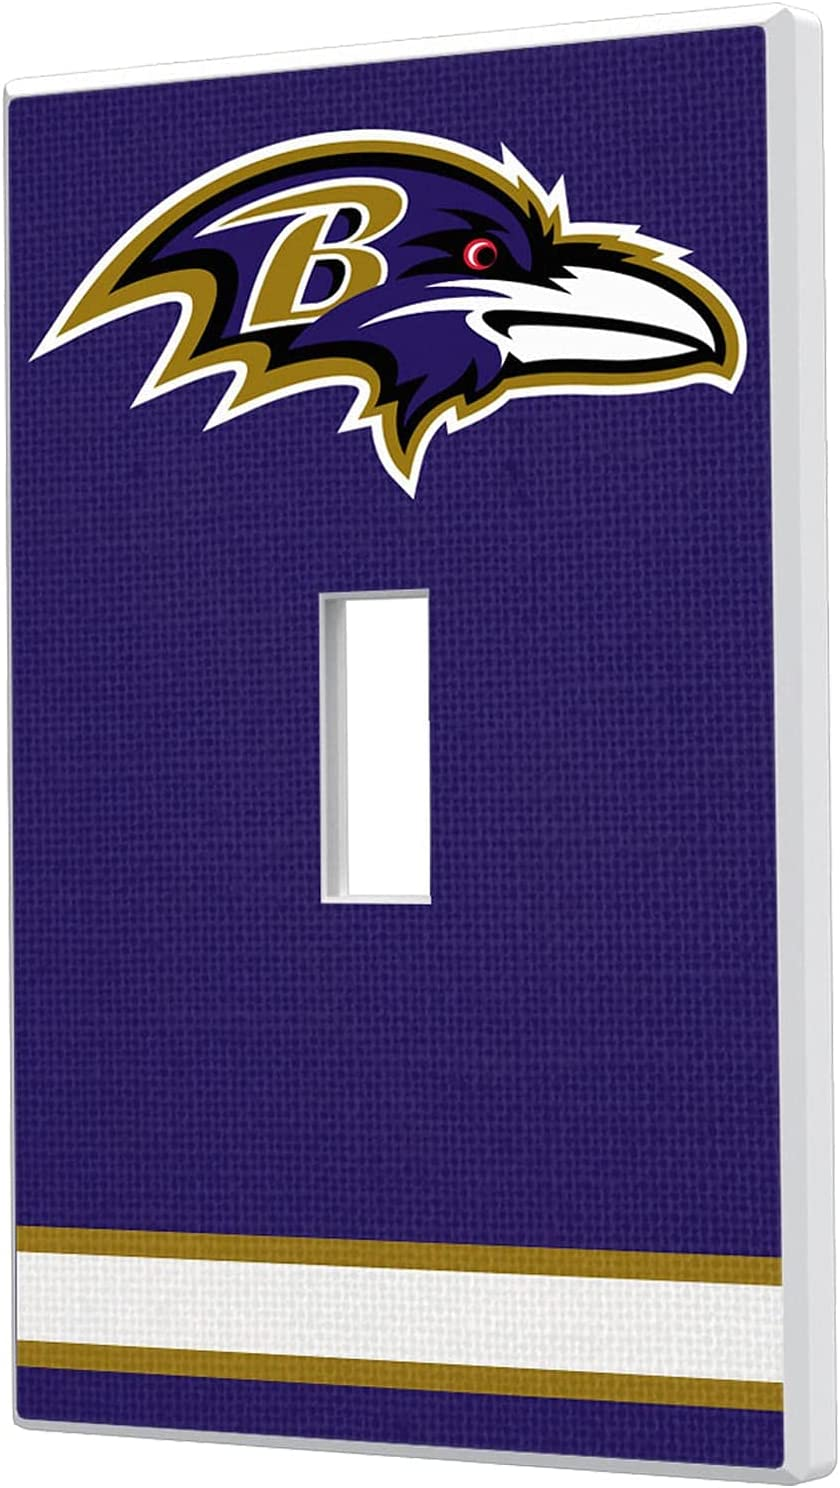 Baltimore Ravens Stripe Popularity Single Plate Toggle Cheap mail order shopping Light Switch